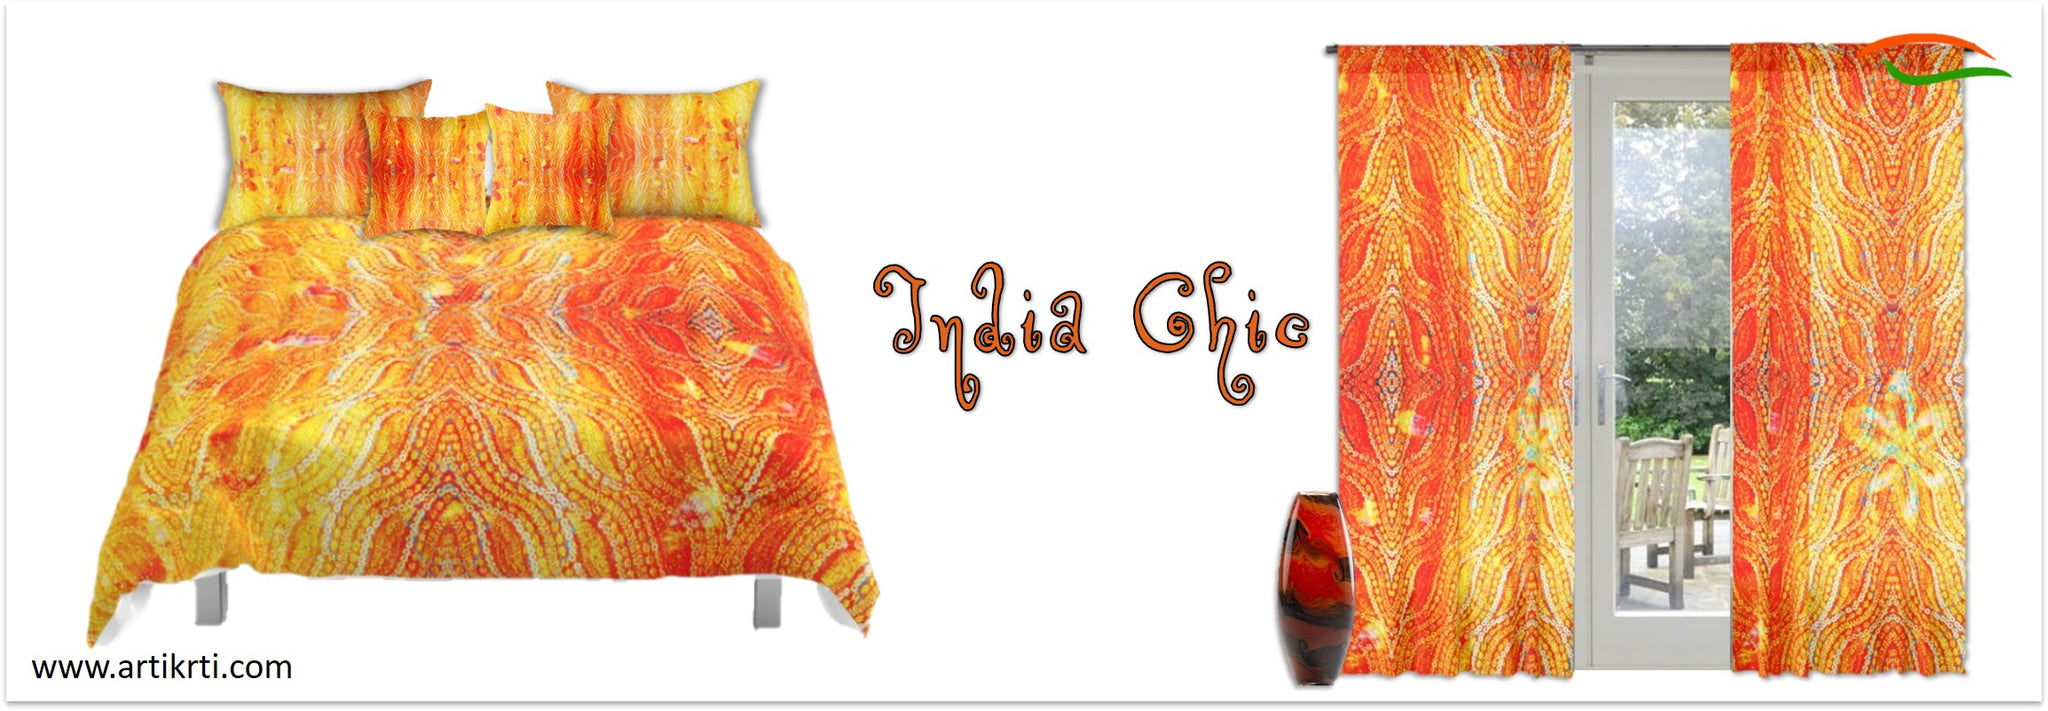 indian-curtains-orange-yellow-sunrise-sequin-design-comforter-pillow-covers-cushion-covers-artikrti